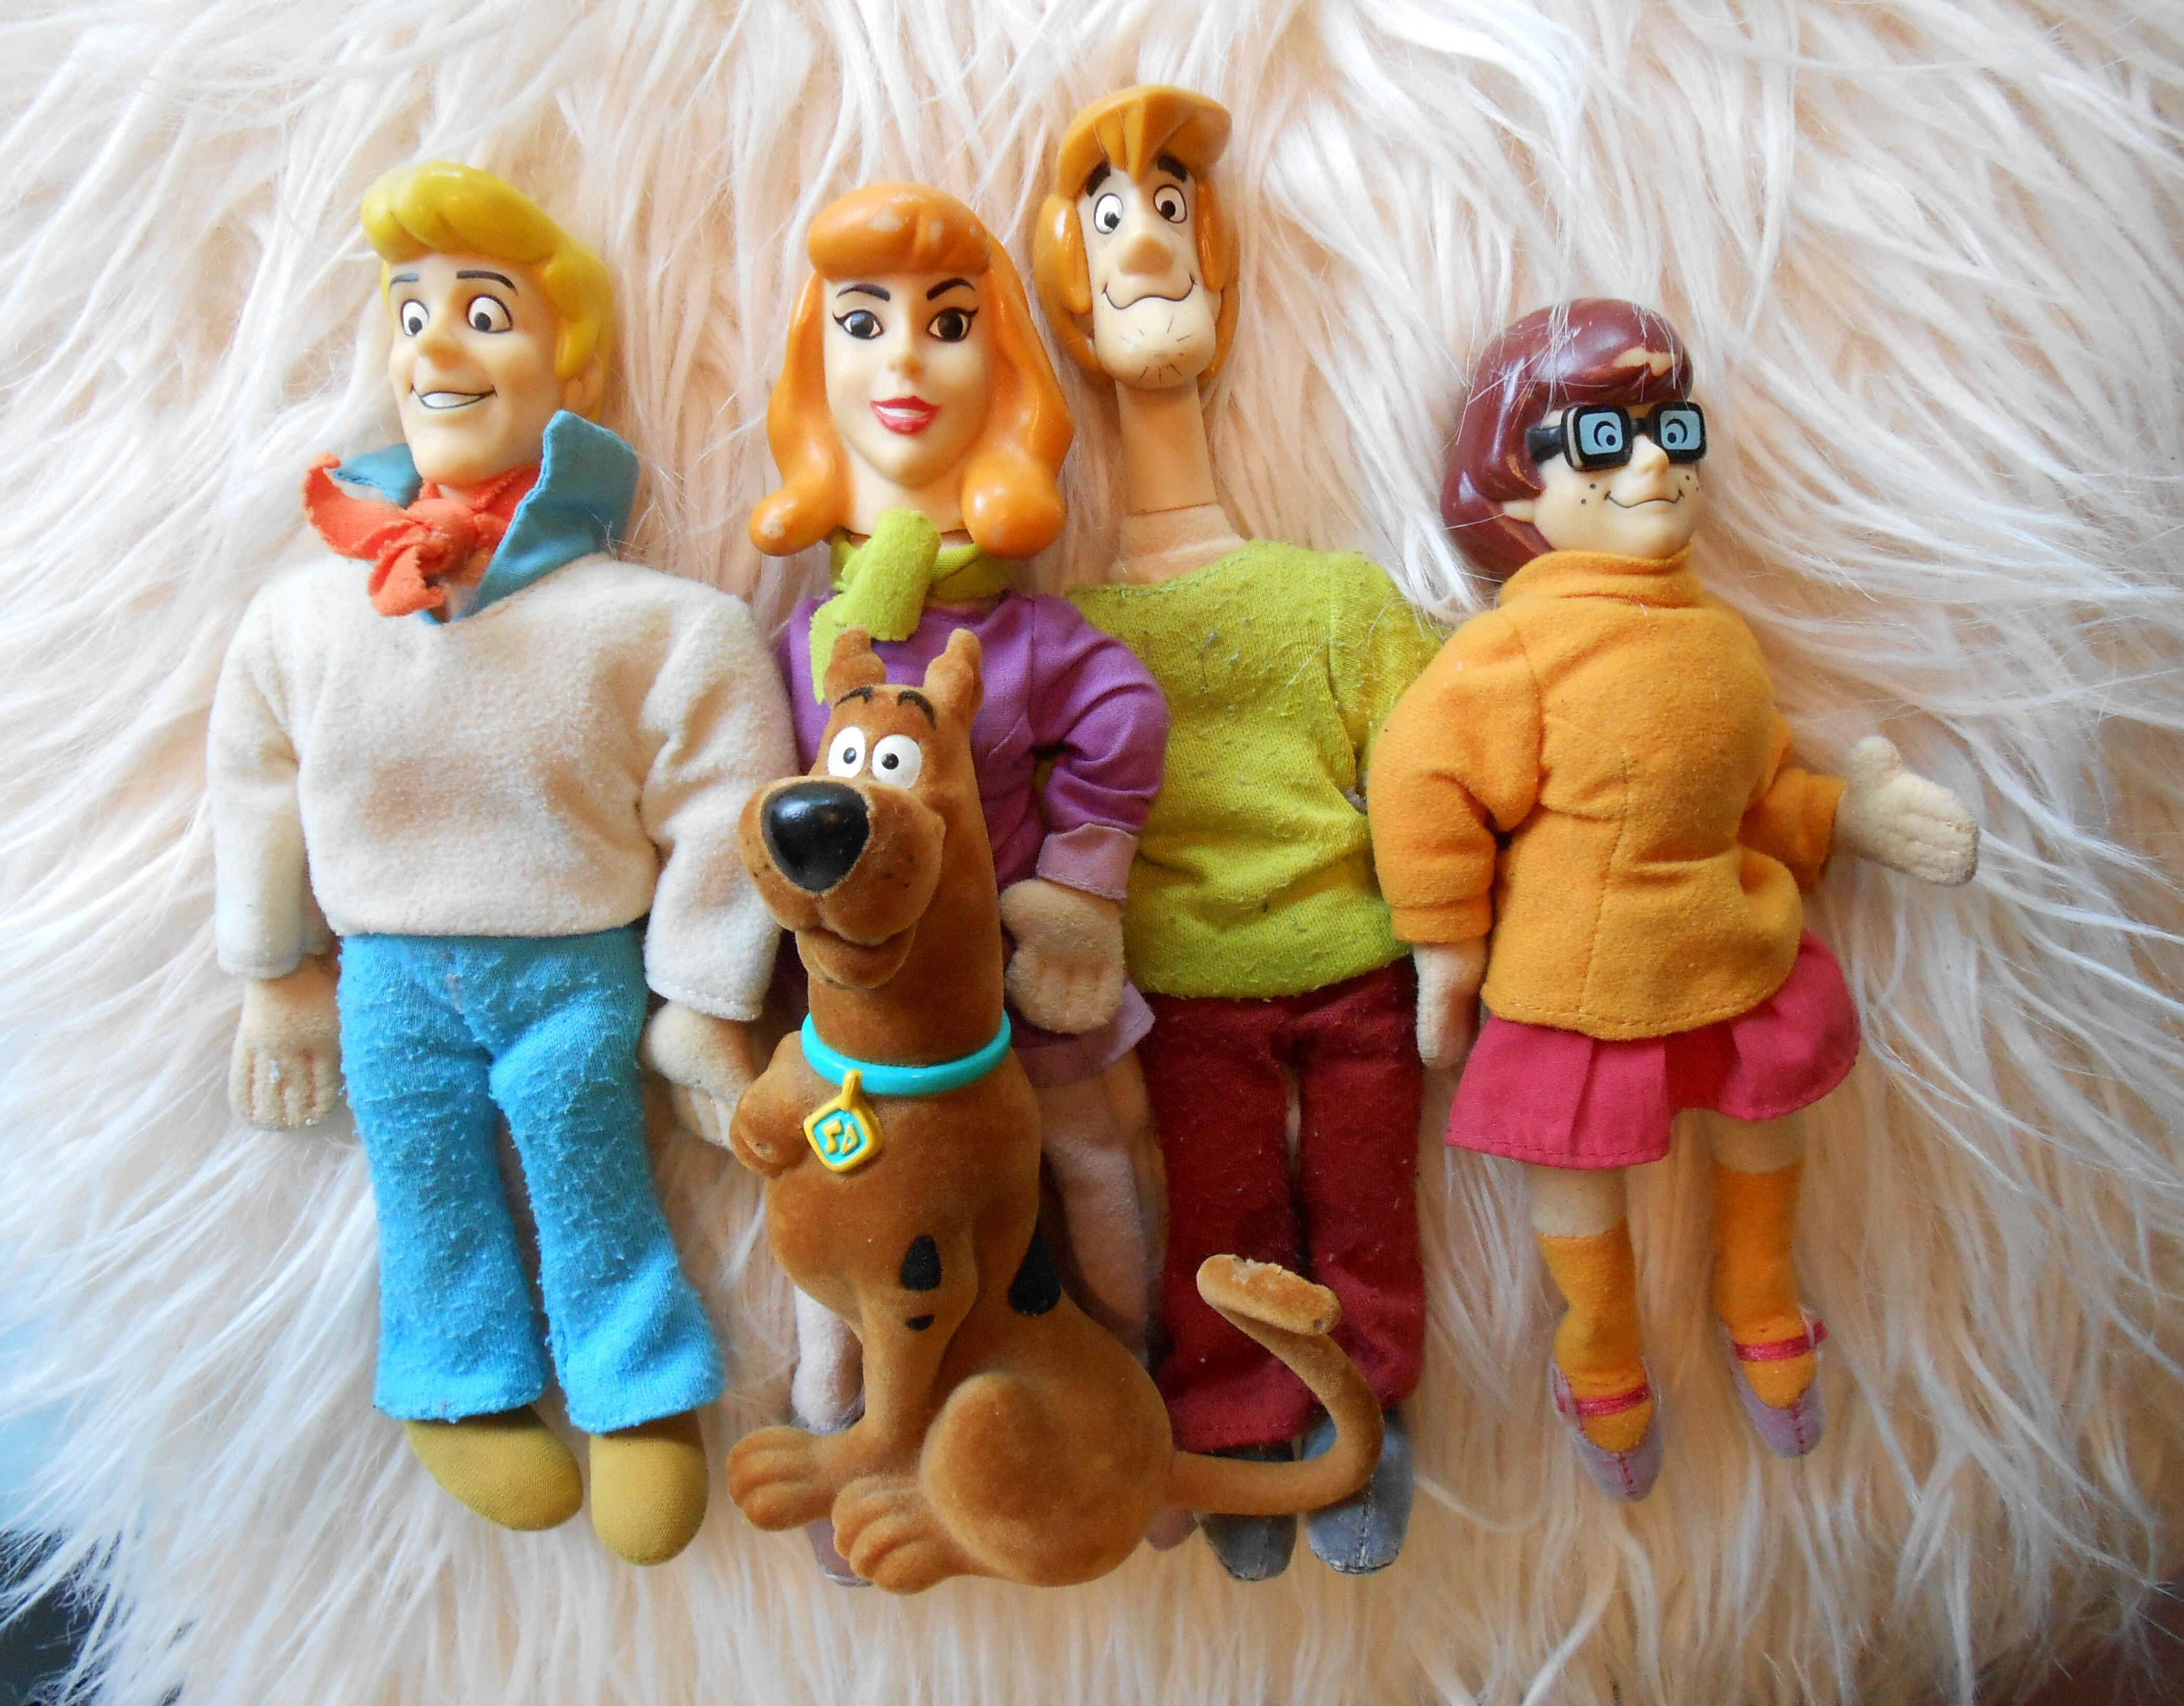 """9"""" Scooby and the Gang Plush Dolls (with Plastic Heads), 2000 ~ My newest Scooby Doo purchase!"""